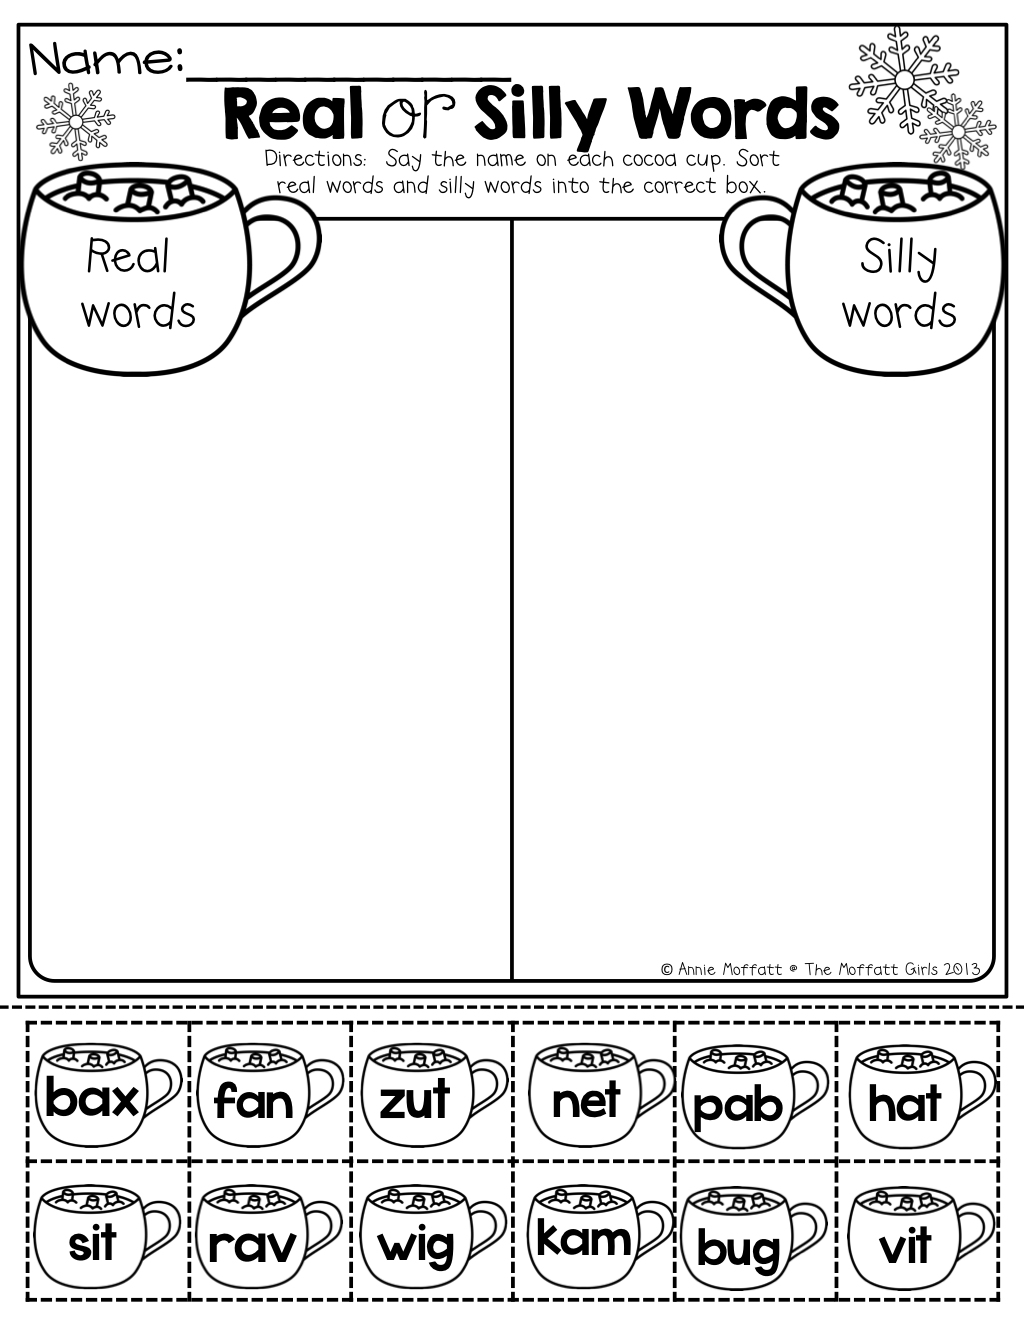 Real Or Silly Words Cut And Paste Great For Practicing Decoding Skills With Simple Cvc Words